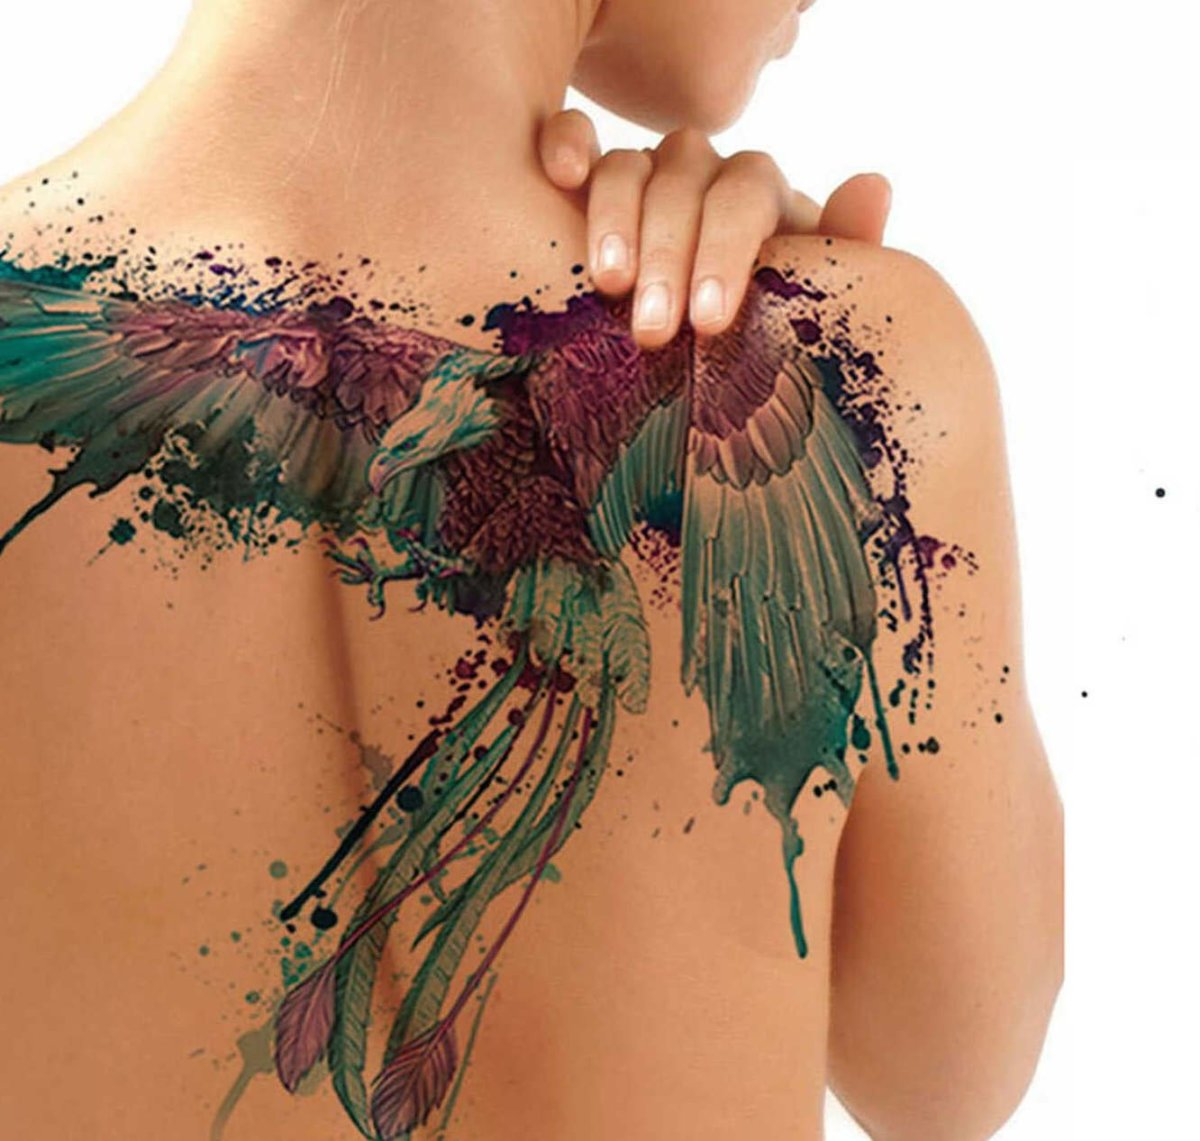 Tattoo Ideas Artists And Models: Is The Tattoo Industry Broken?